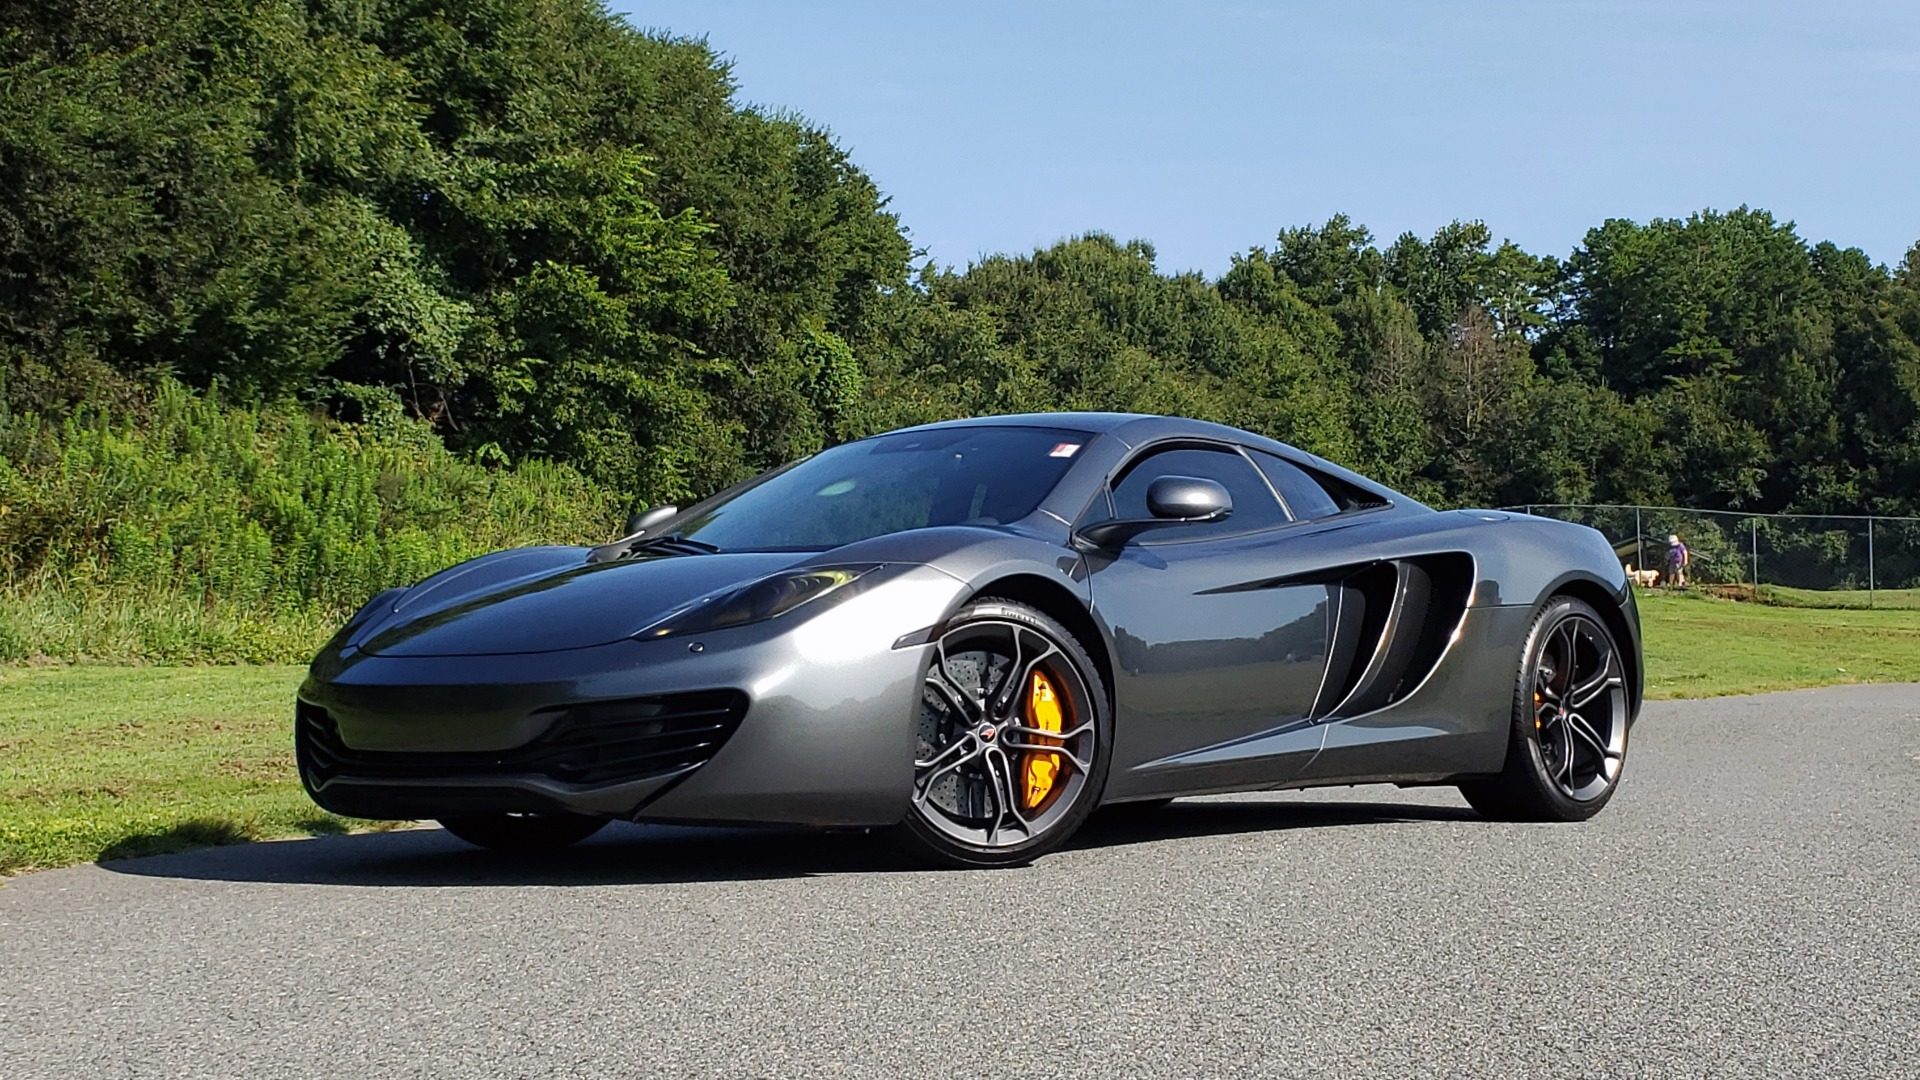 Used 2012 McLaren MP4-12C COUPE / 3.8 L V8 592HP / AUTO / NAV / CCB / LOW MILES for sale $97,999 at Formula Imports in Charlotte NC 28227 1